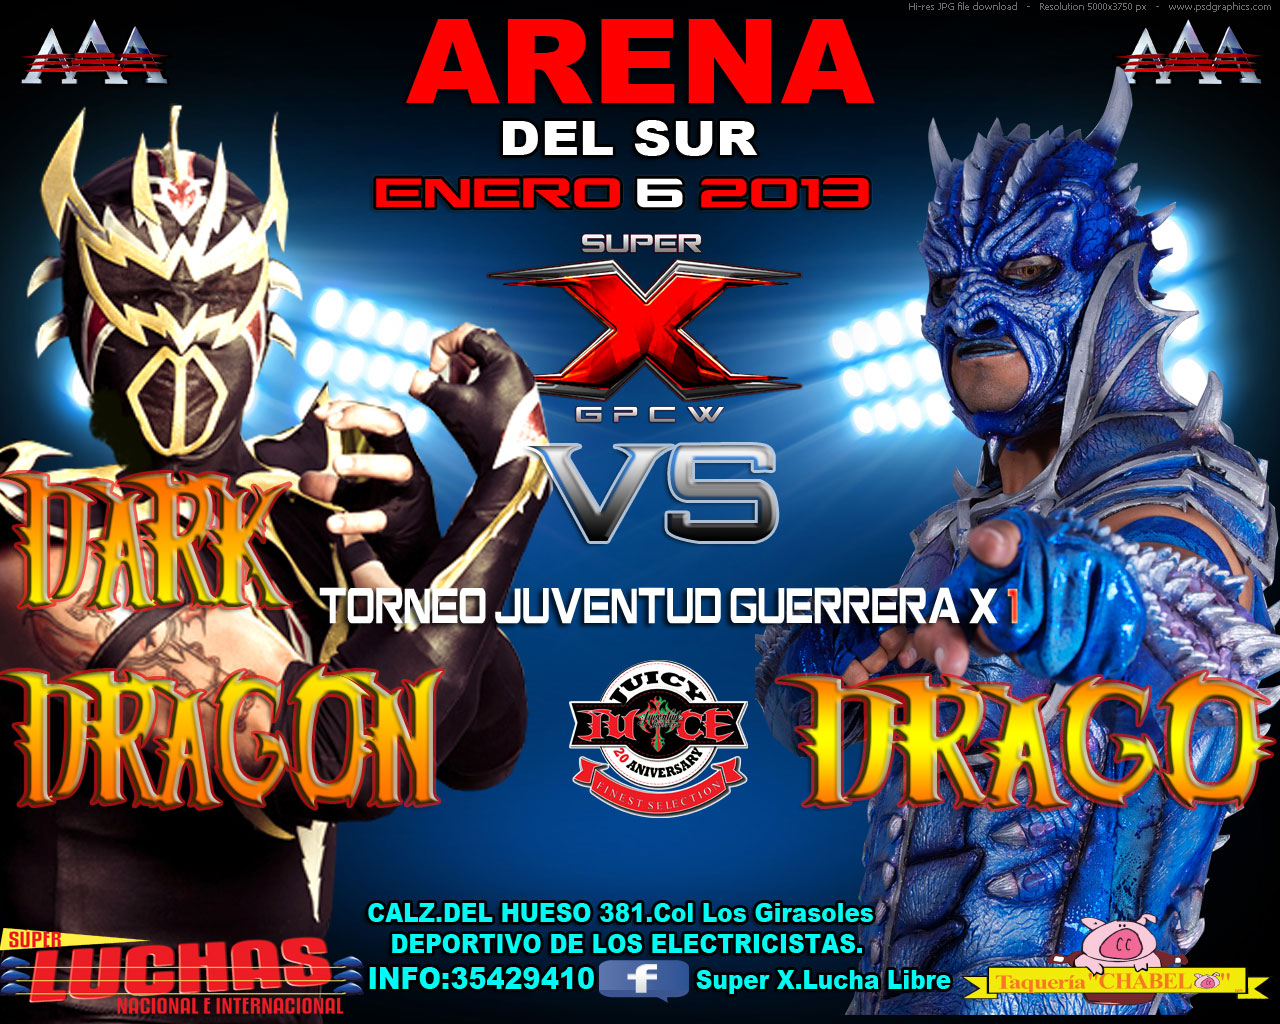 Dark Dragon vs. Drago (Super X - 6/1/2013)